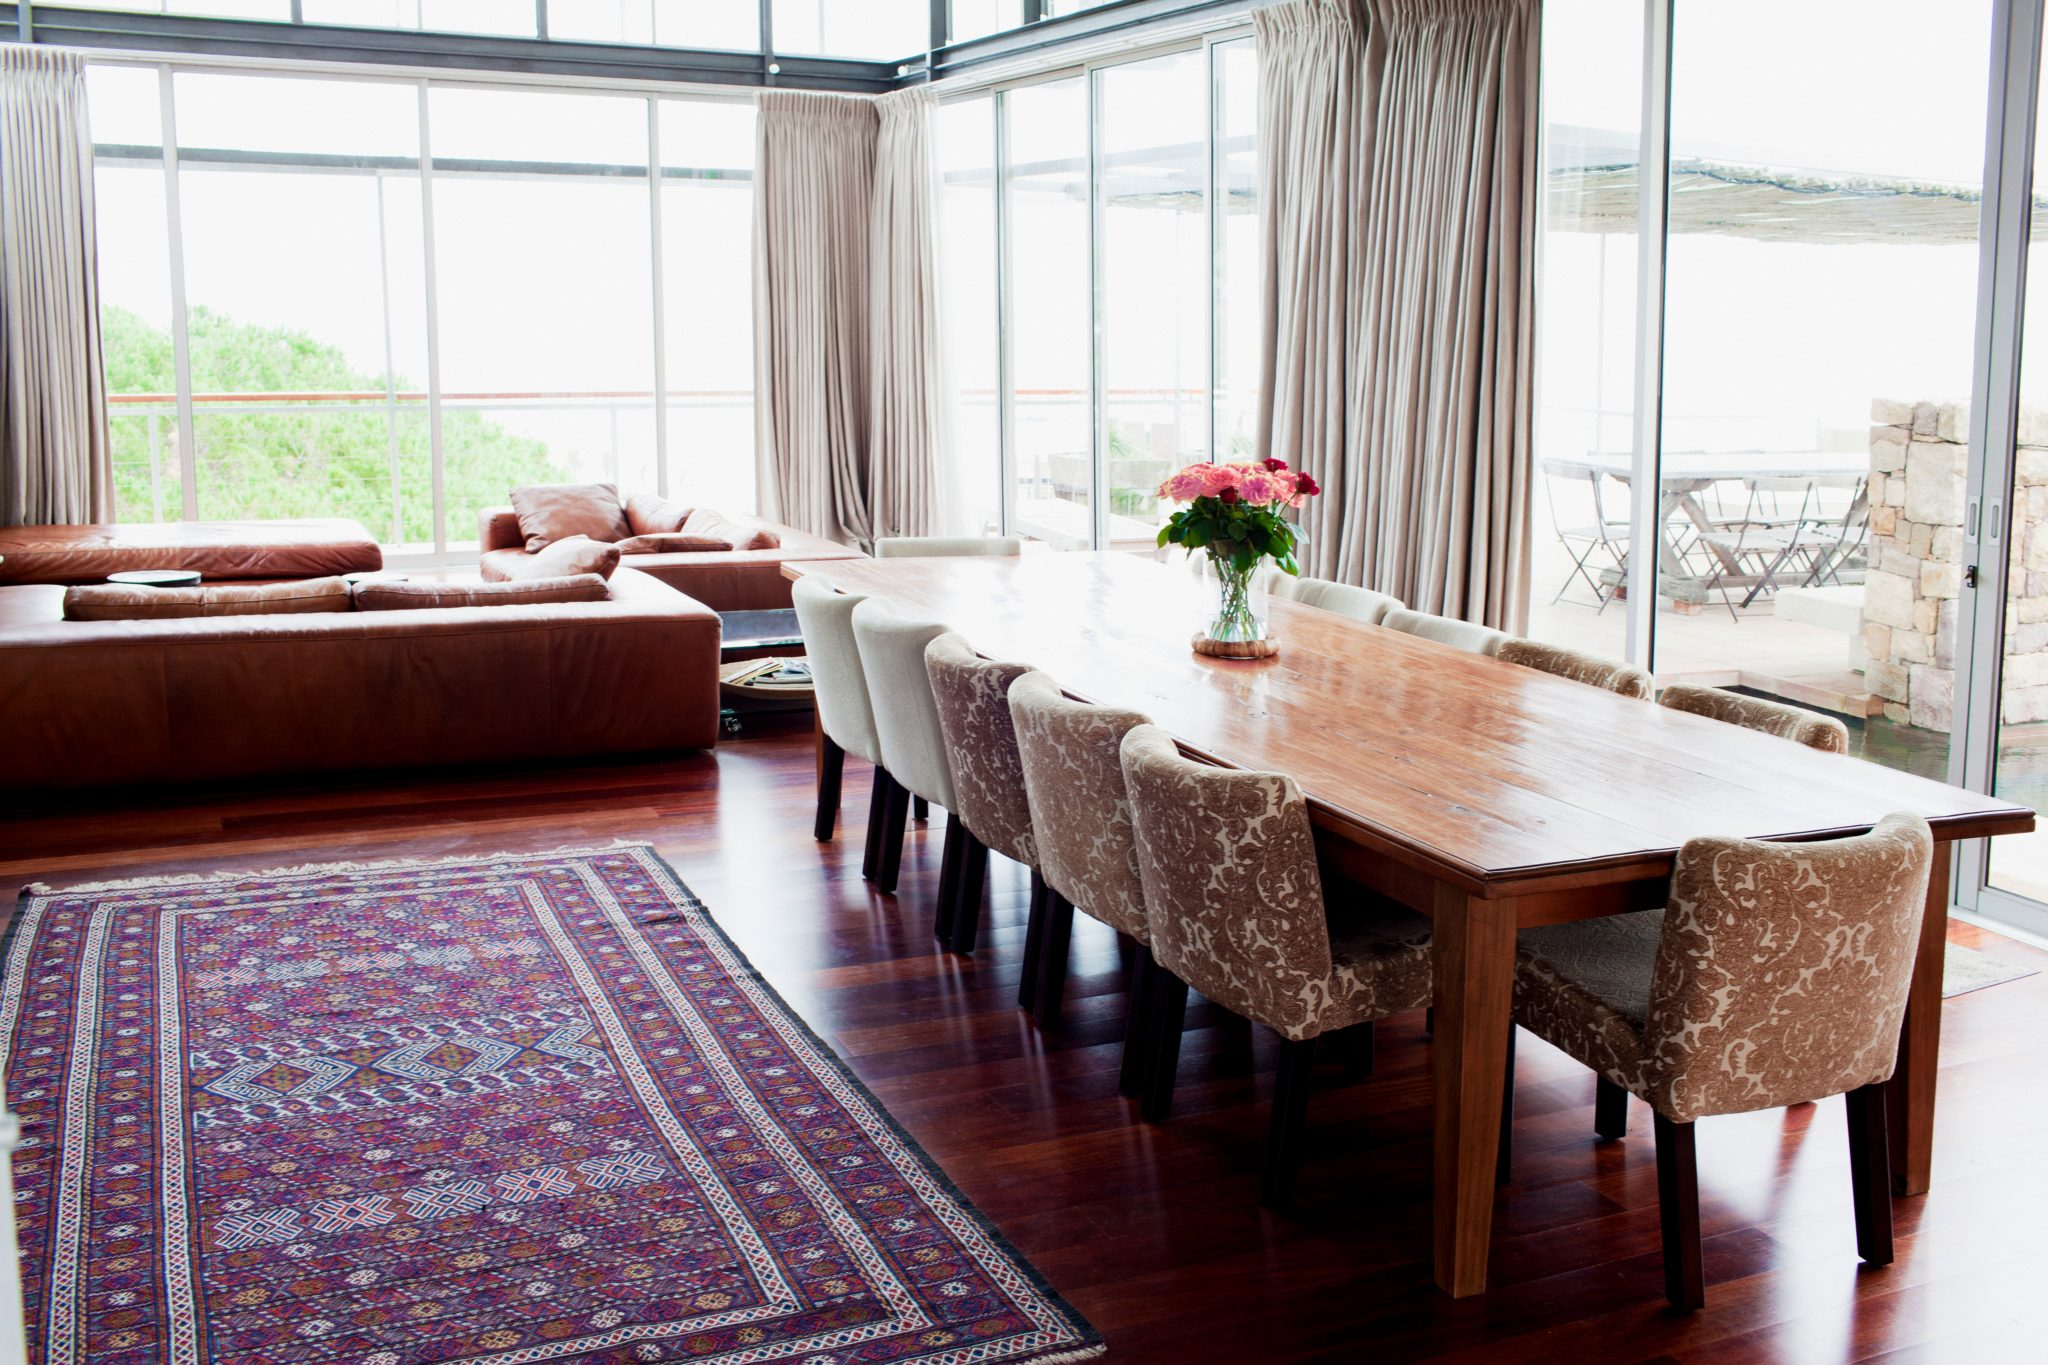 Lake Side Home with Large Dining Table and Mixed Chairs by Art Home Garden